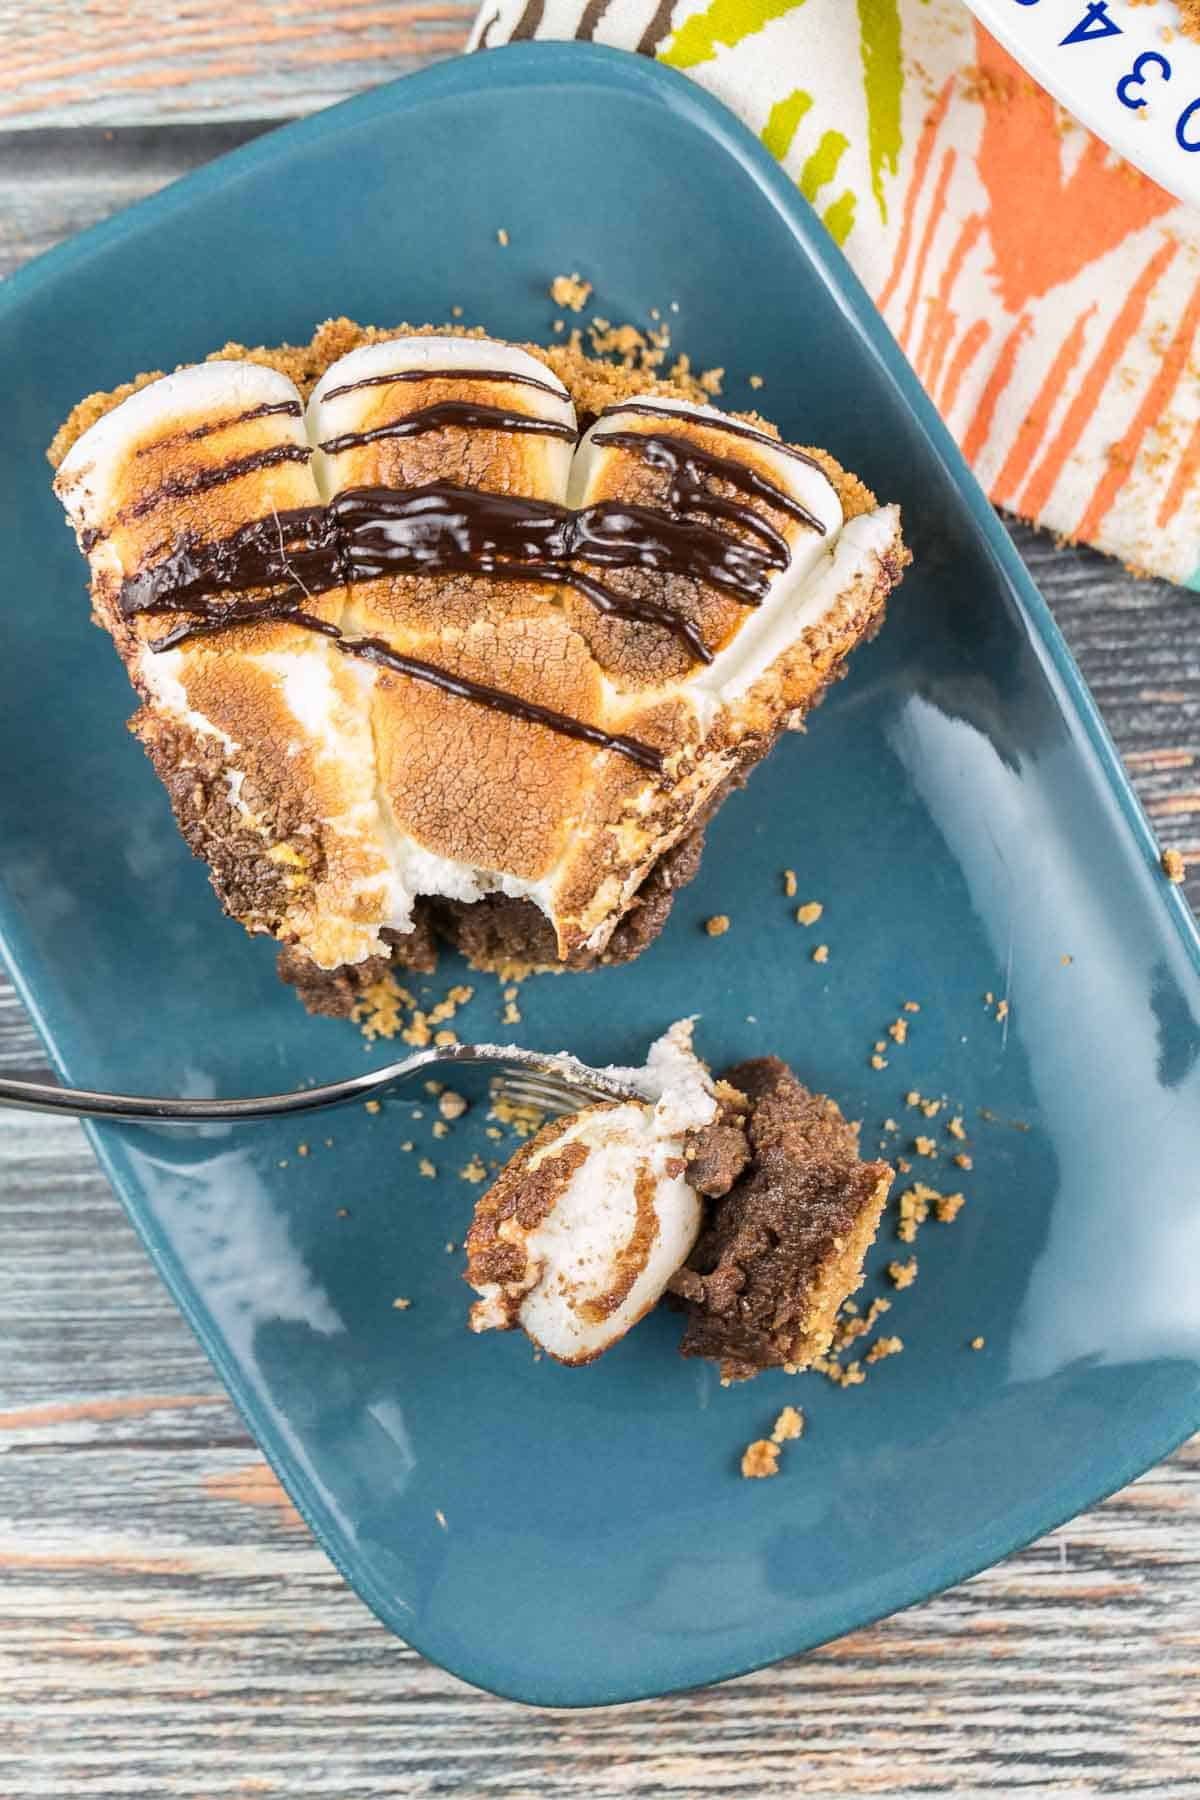 S'mores Pie: Bring the campfire inside with a decadent pie made with a crispy graham cracker crust, thick layer of milk chocolate filling, and toasted marshmallows on top. {Bunsen Burner Bakery} #pie #smores #smorespie #marshmallows